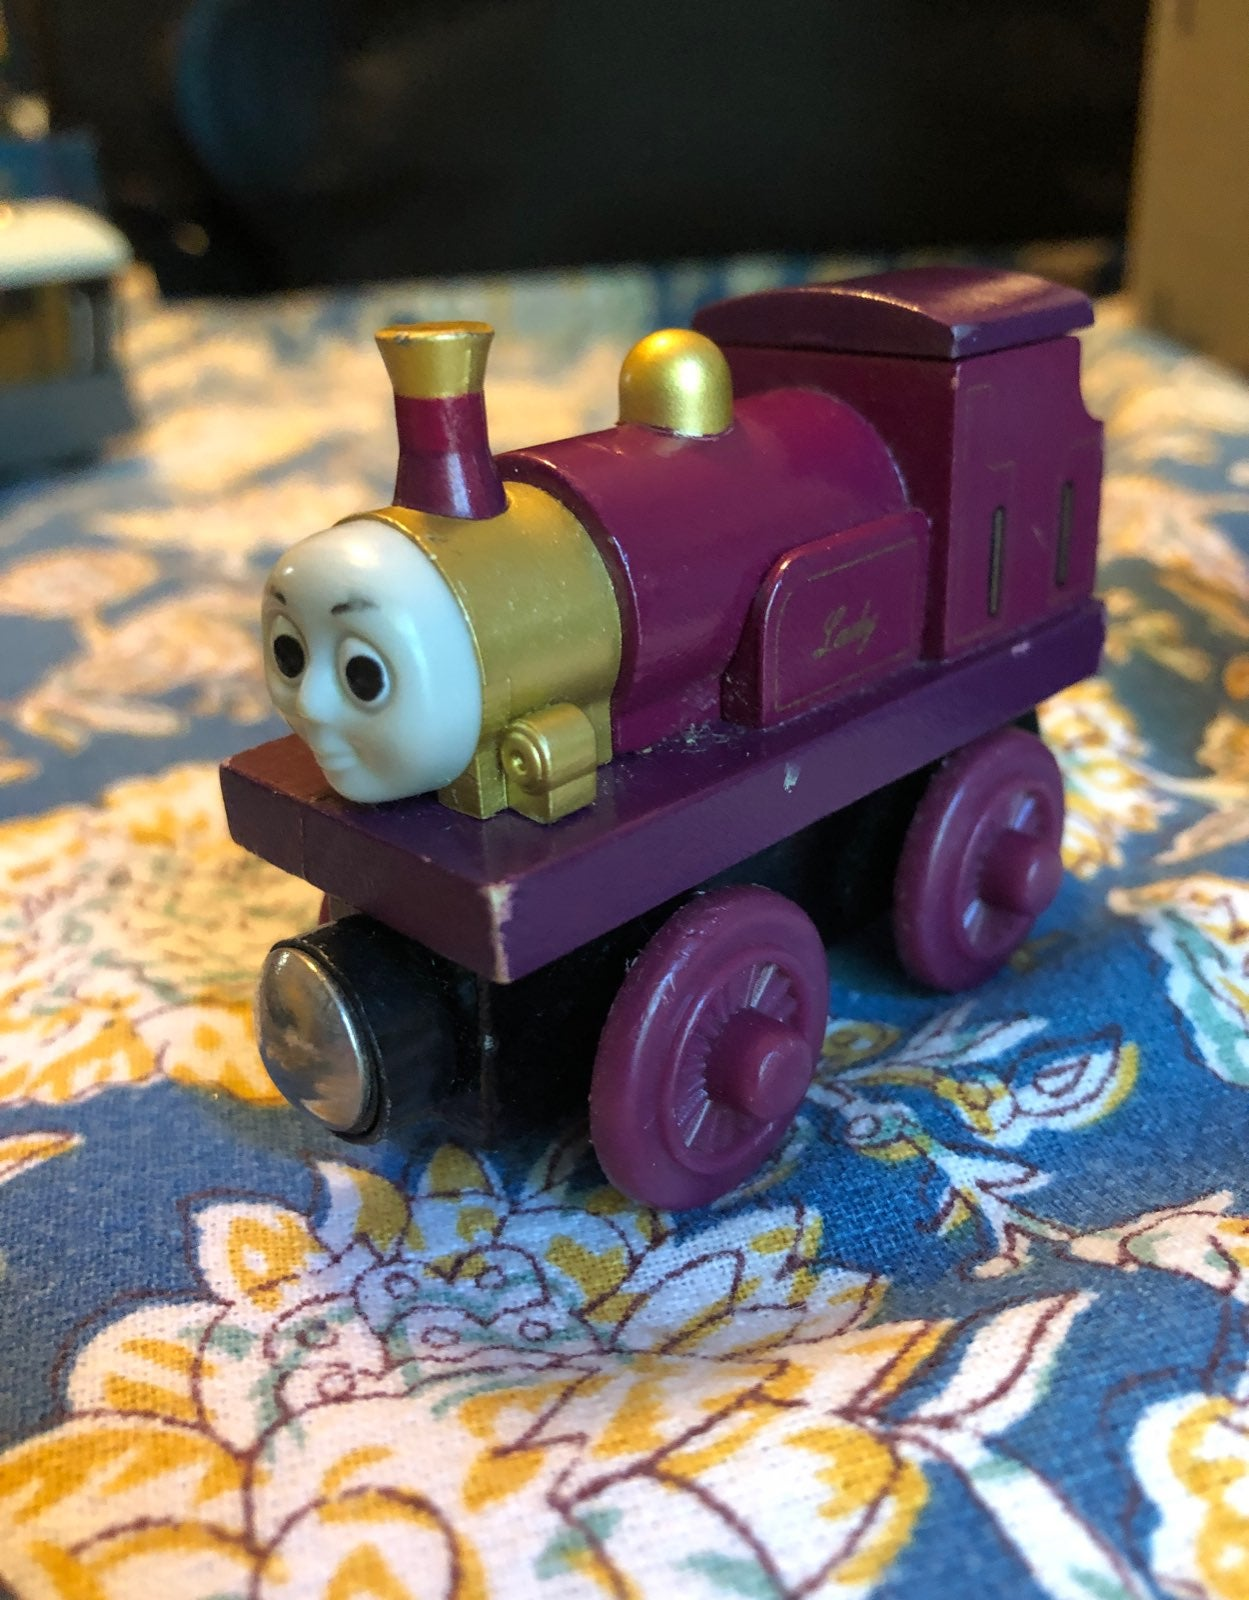 Lady from Thomas the Train